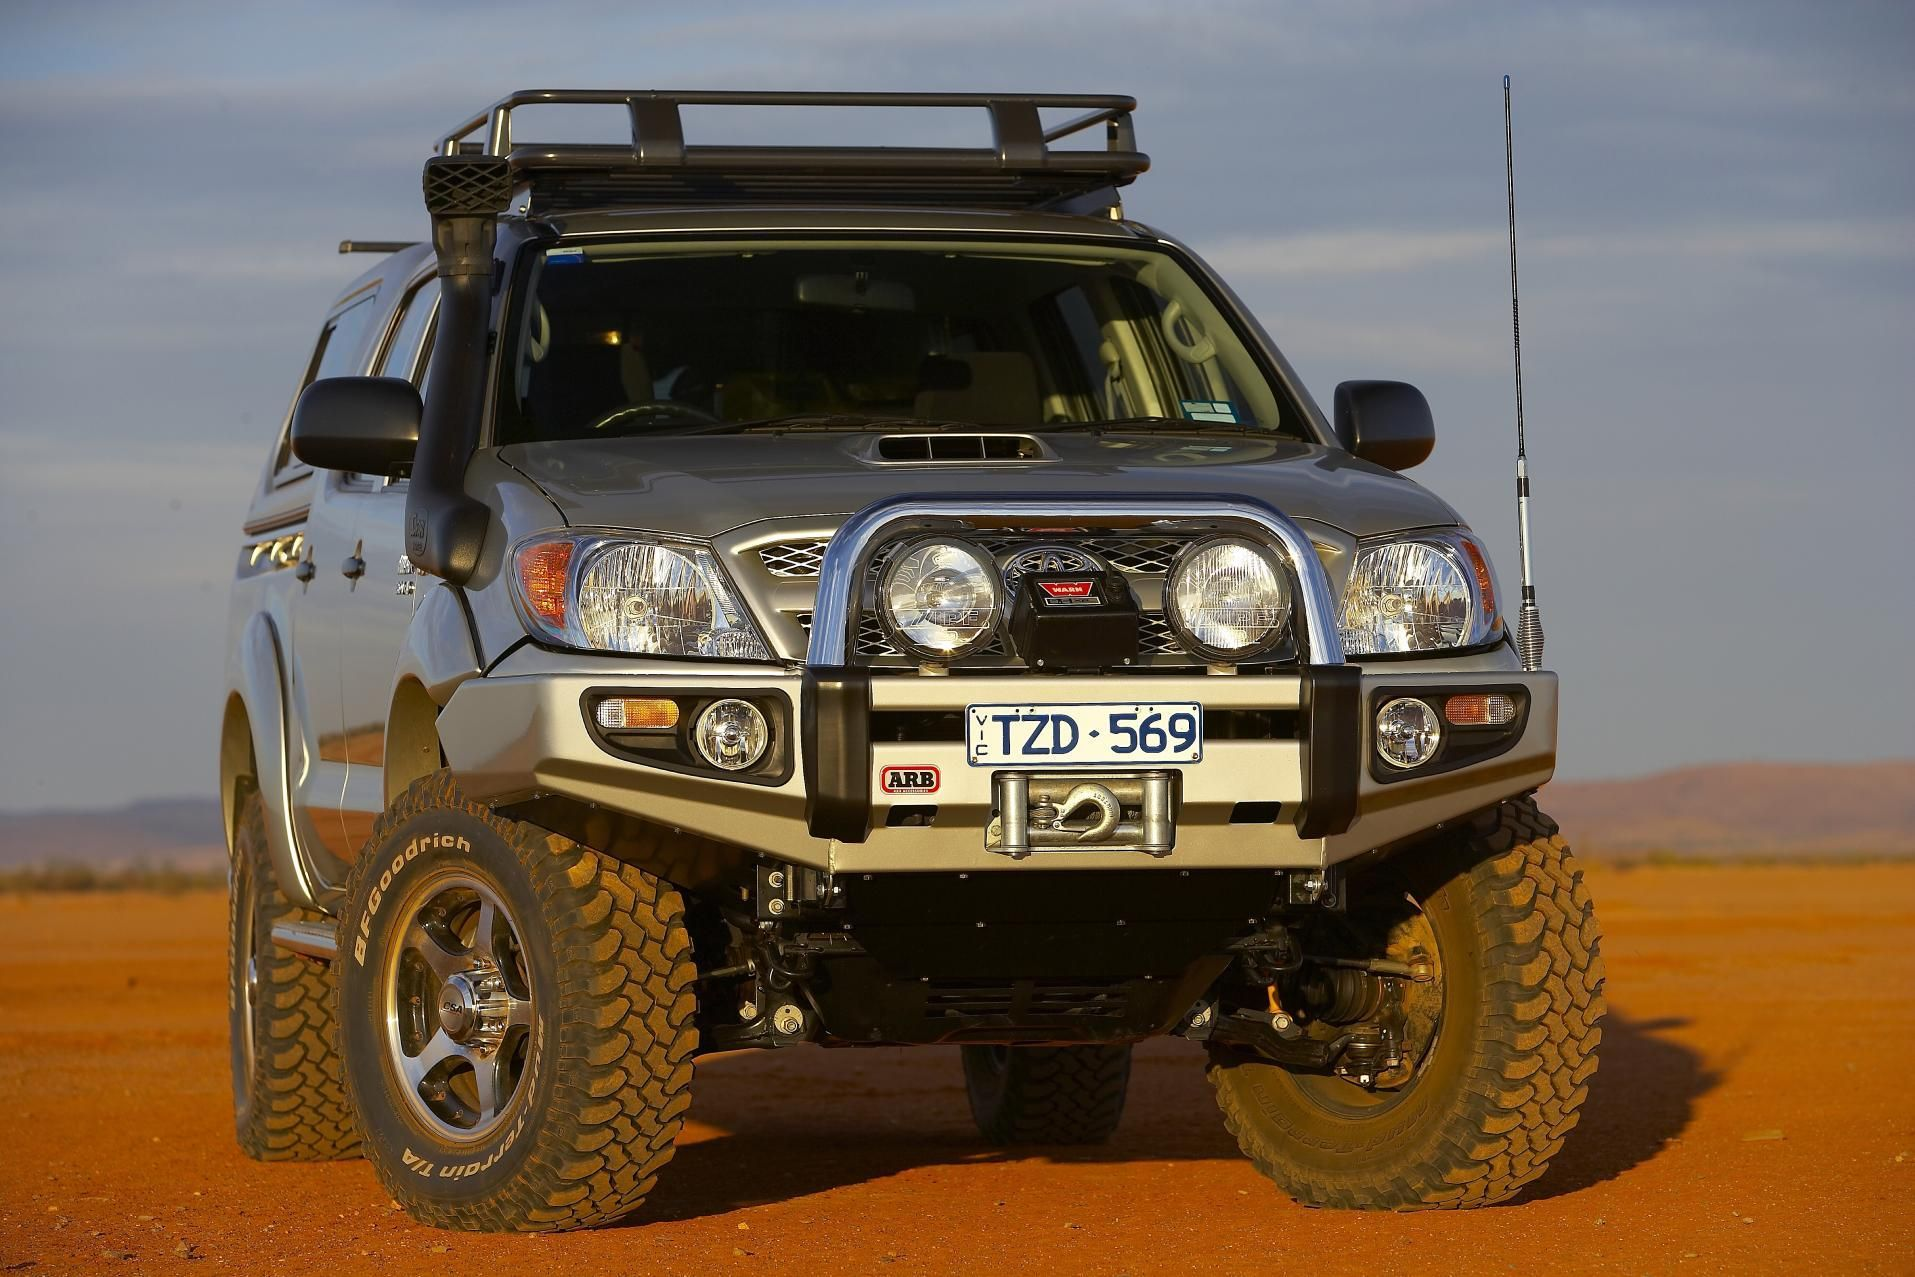 Hilux Arb Winch Bullbar Off Road 4x4 Travel Overland